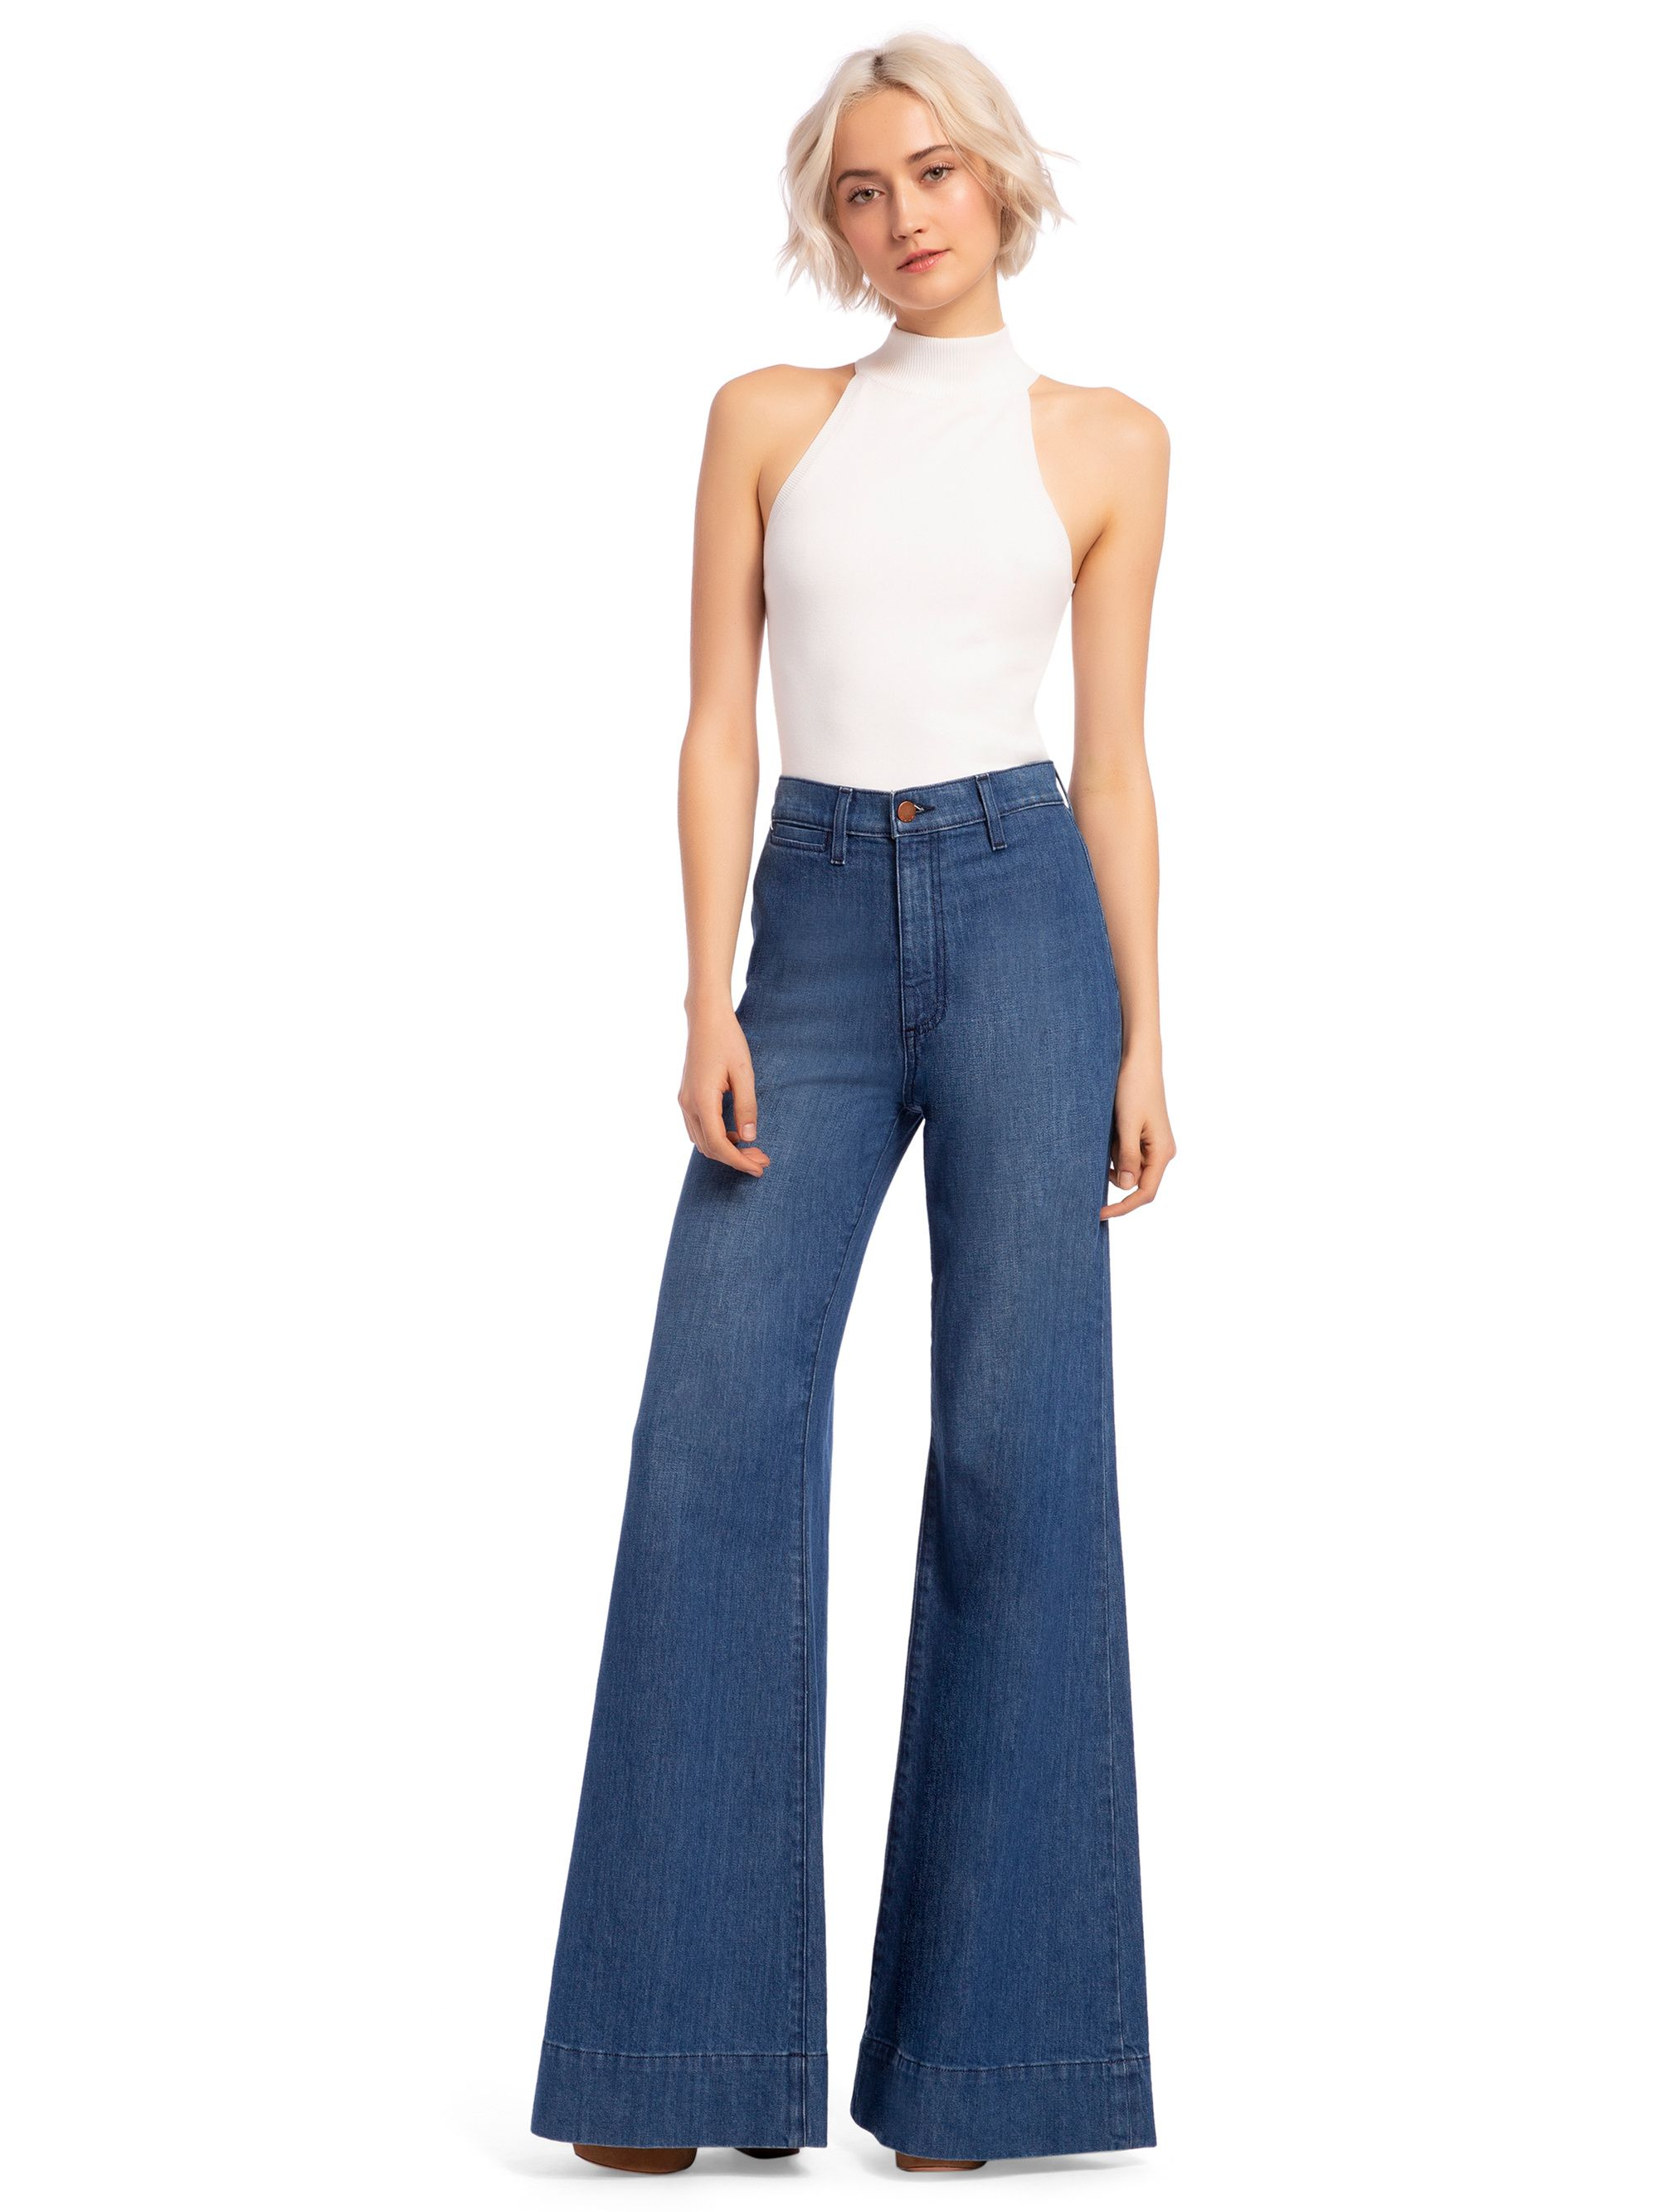 The Cheapest Price 2019 New Fashion Women Lace Bell Bottoms Flare Hot Sale Pants Mid Waisted Wide Leg Long Pants Quality And Quantity Assured Pants & Capris Bottoms